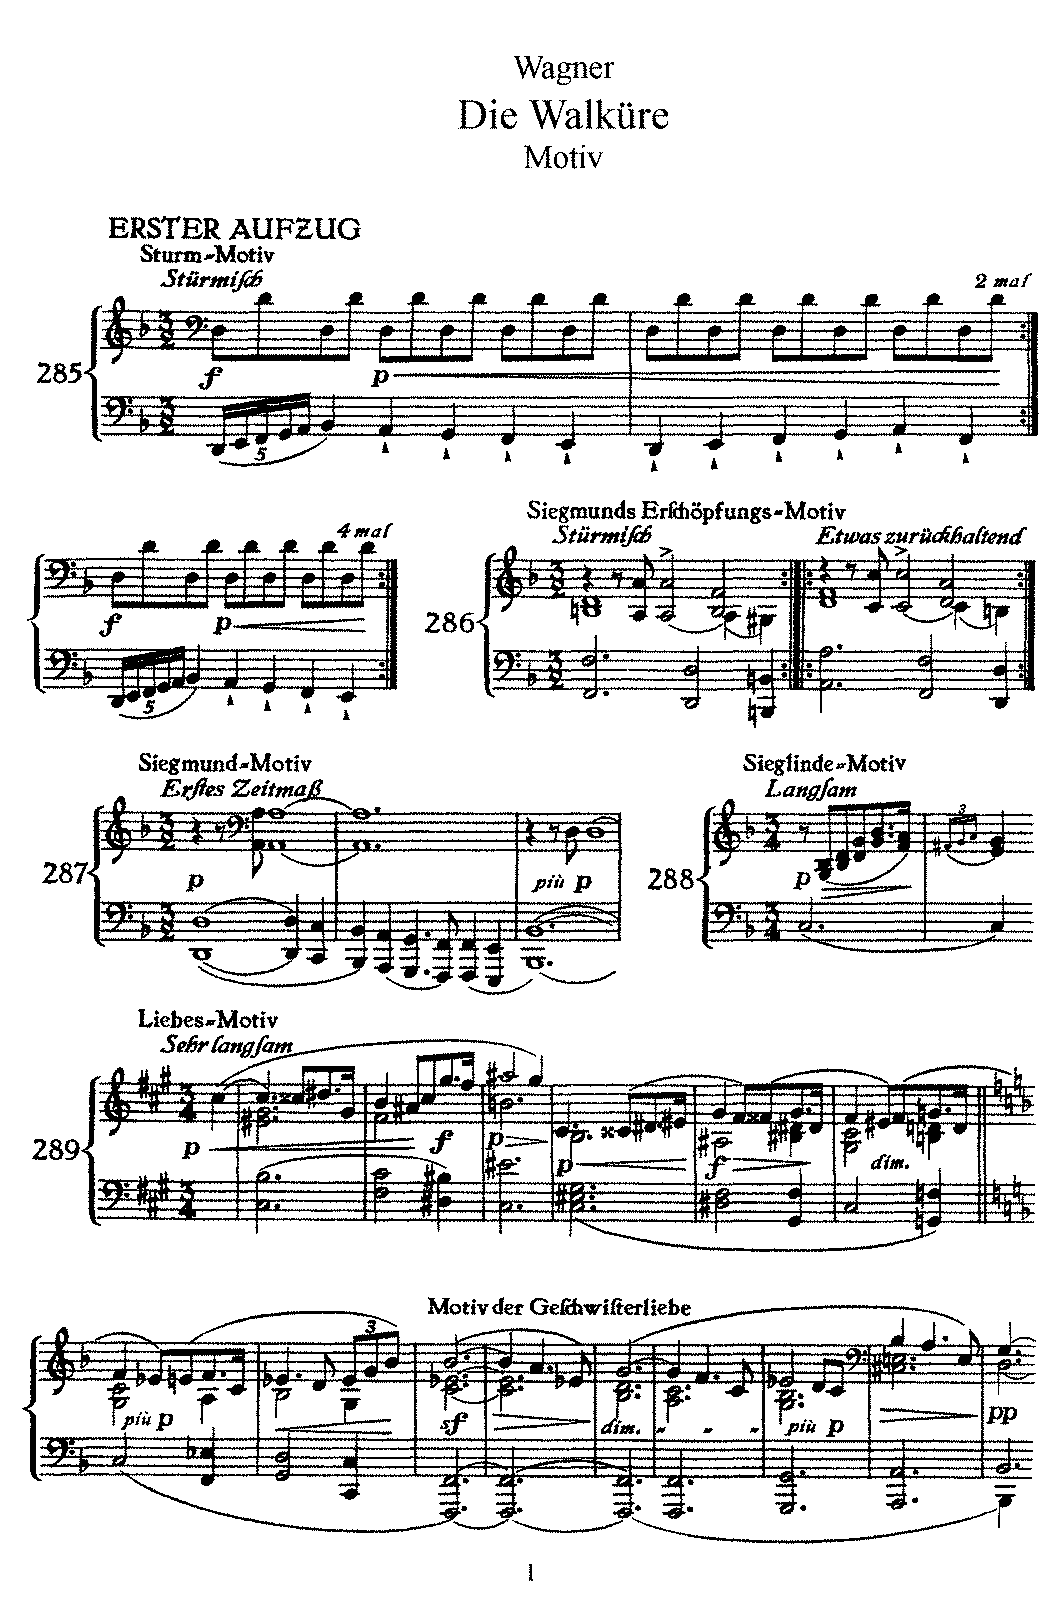 Wagner - Die Walküre (vocal score).pdf